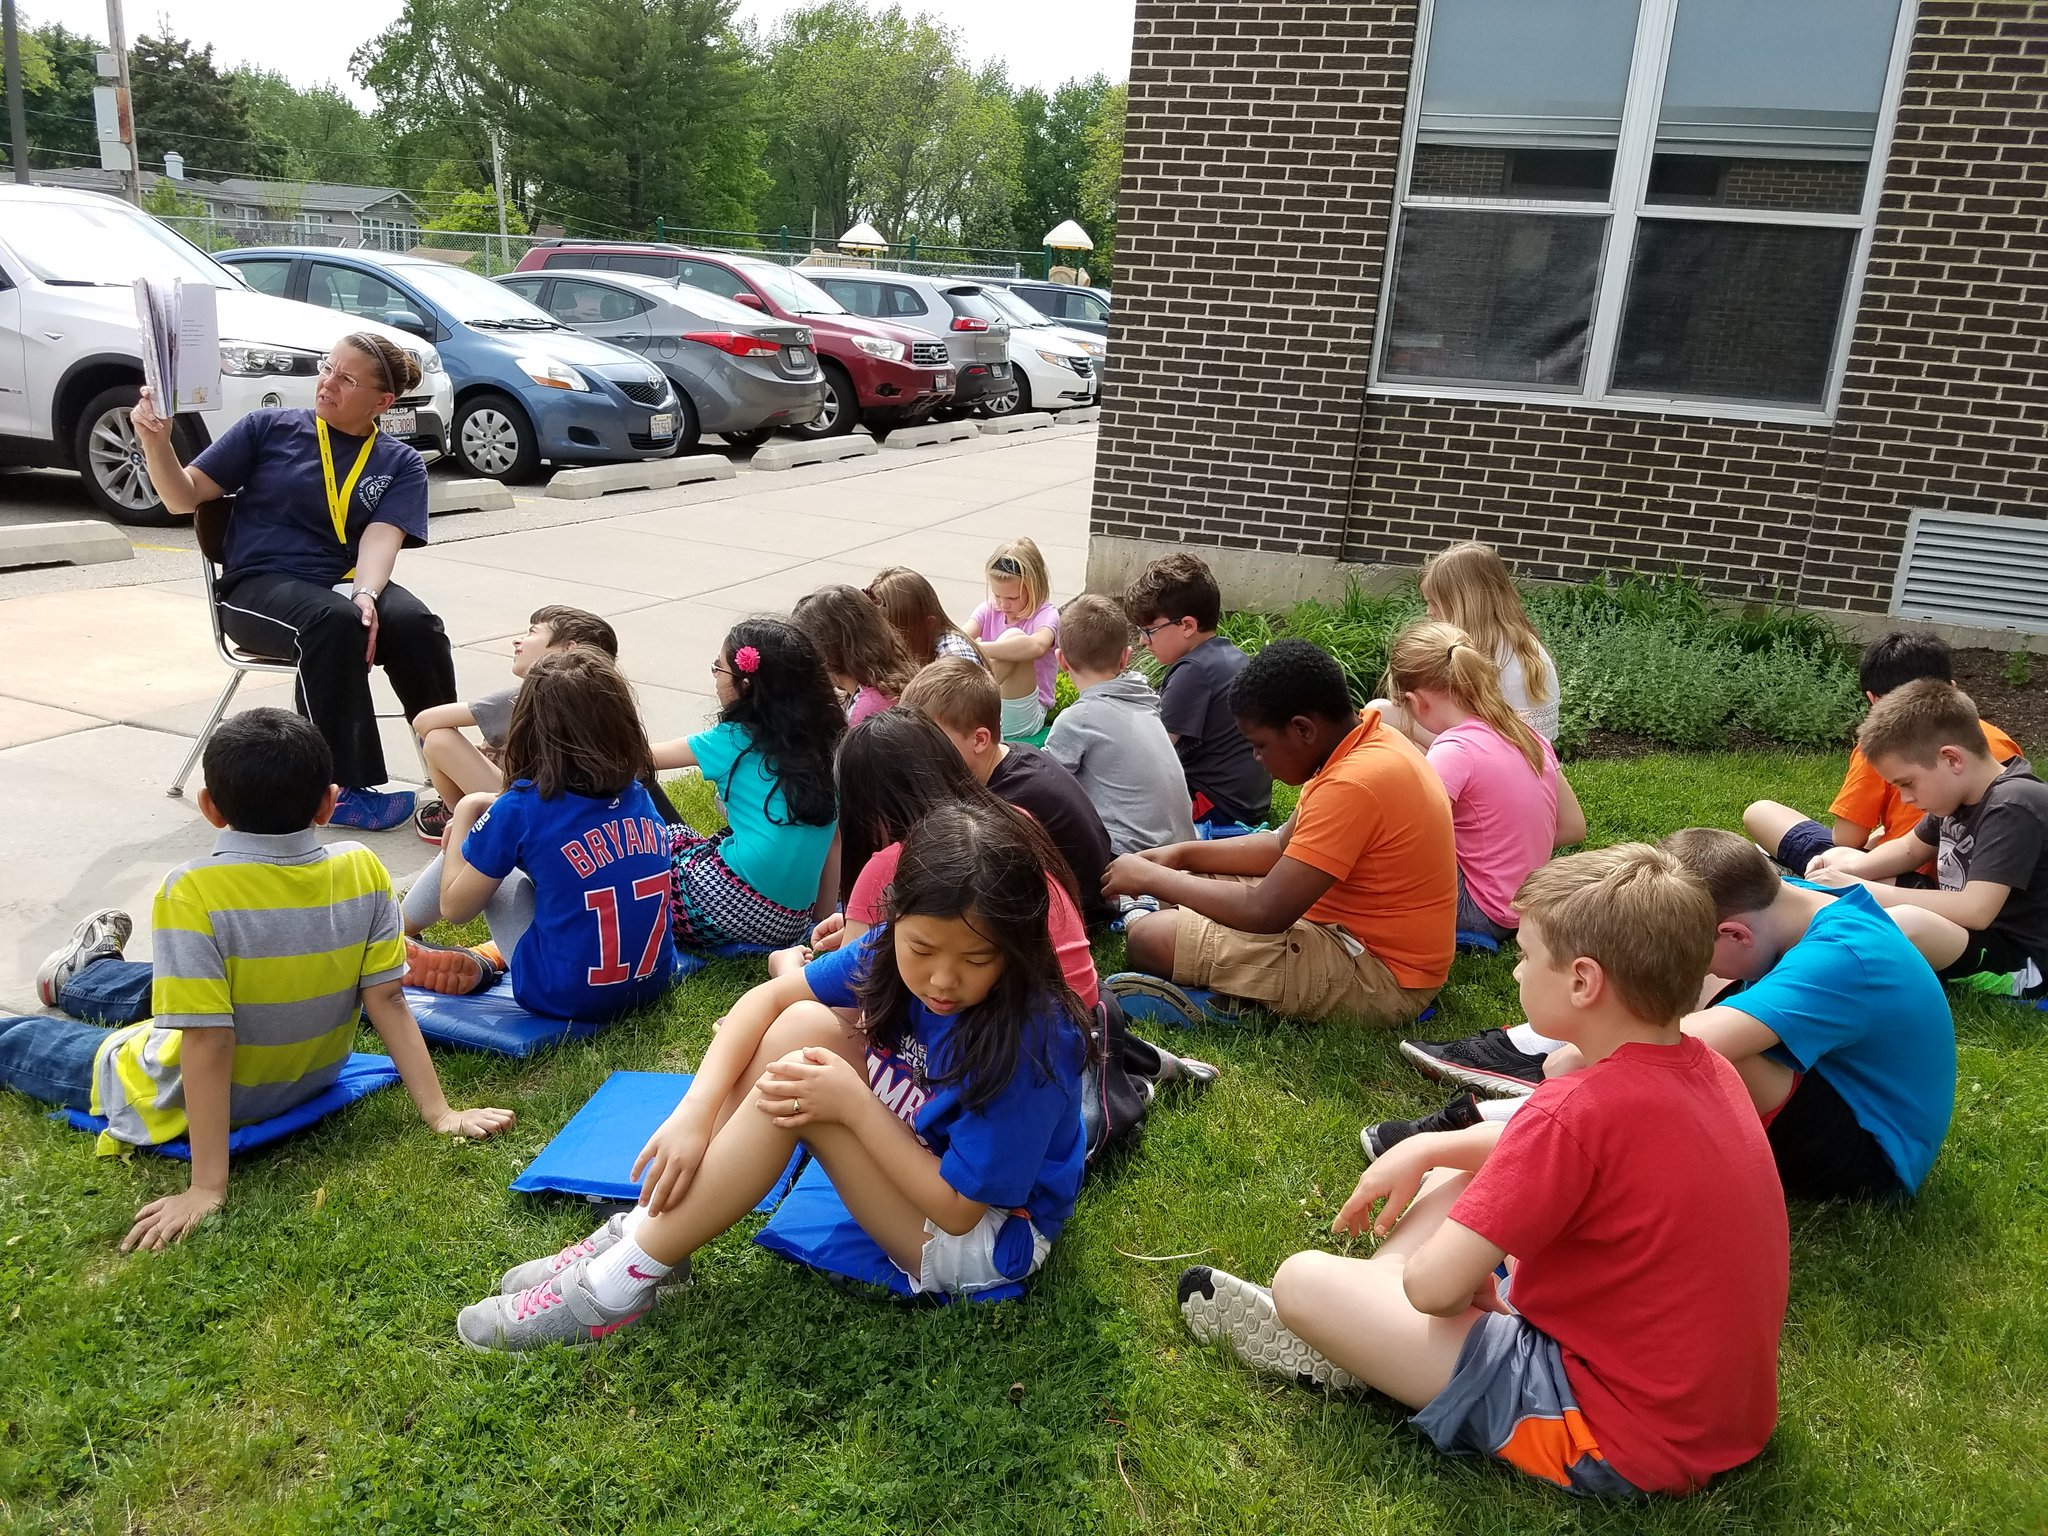 Story person came to read to us and we did so outside!  #iginspires #rtsd26learns https://t.co/bWlgKcRoWt